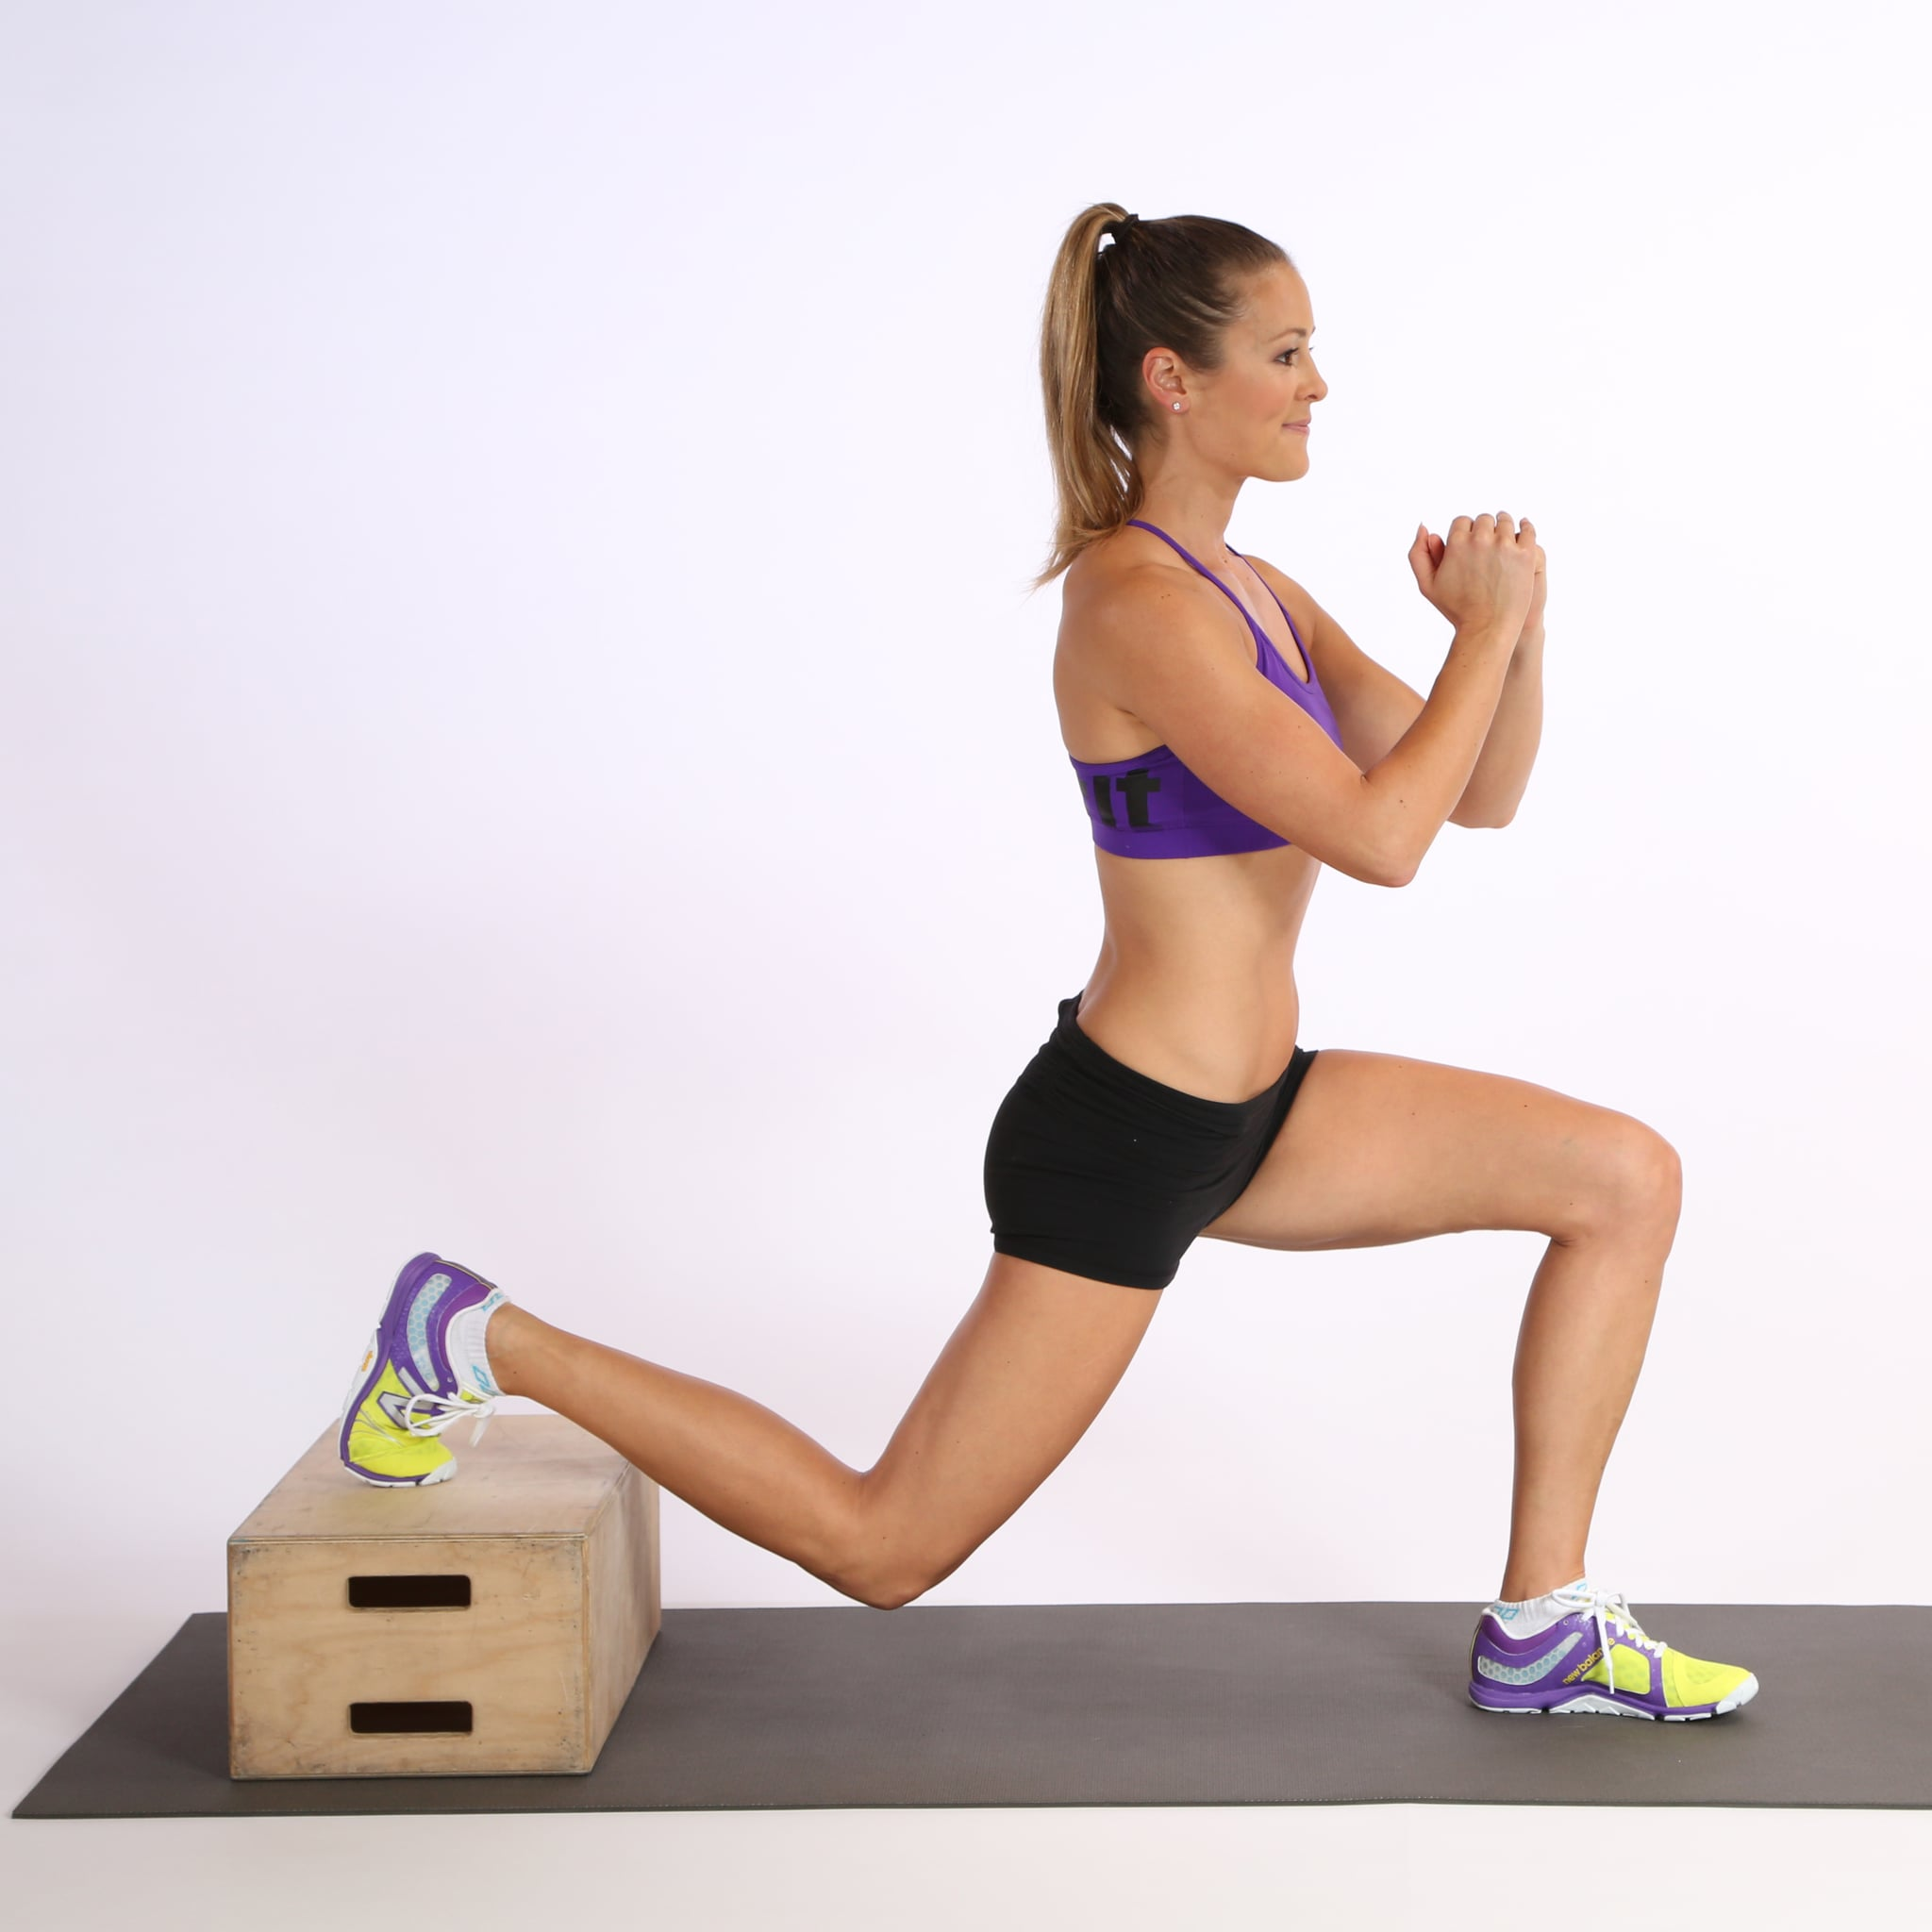 Circuit Three: Bulgarian Split Squat